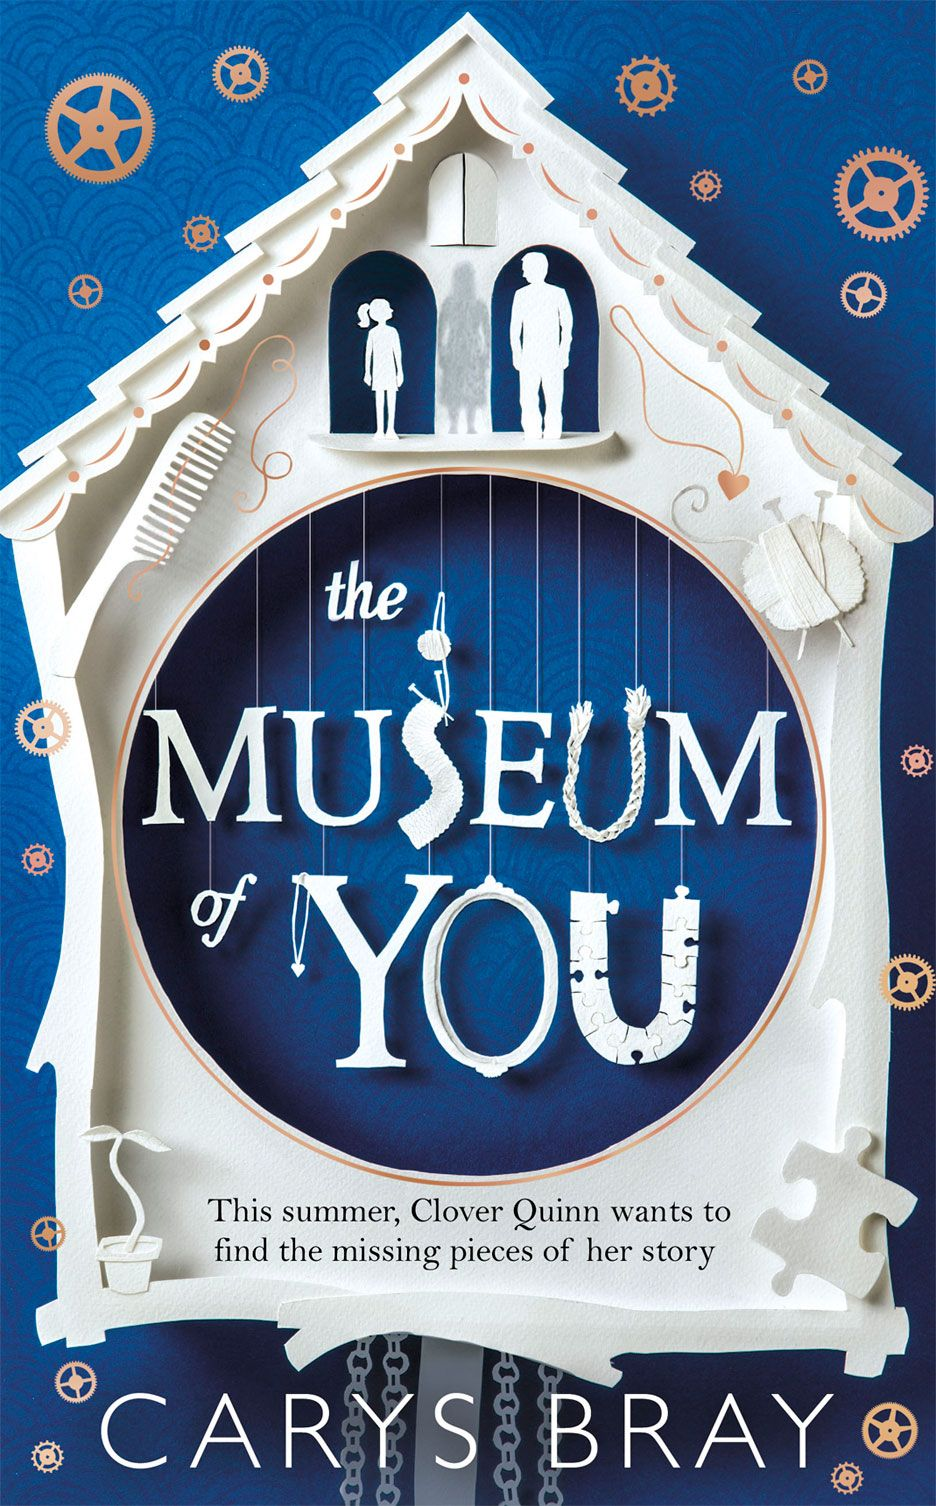 Illustrator Mel Four takes us through the process of designing the wonderfully intricate cover for Carys Bray's new book The Museum of You.